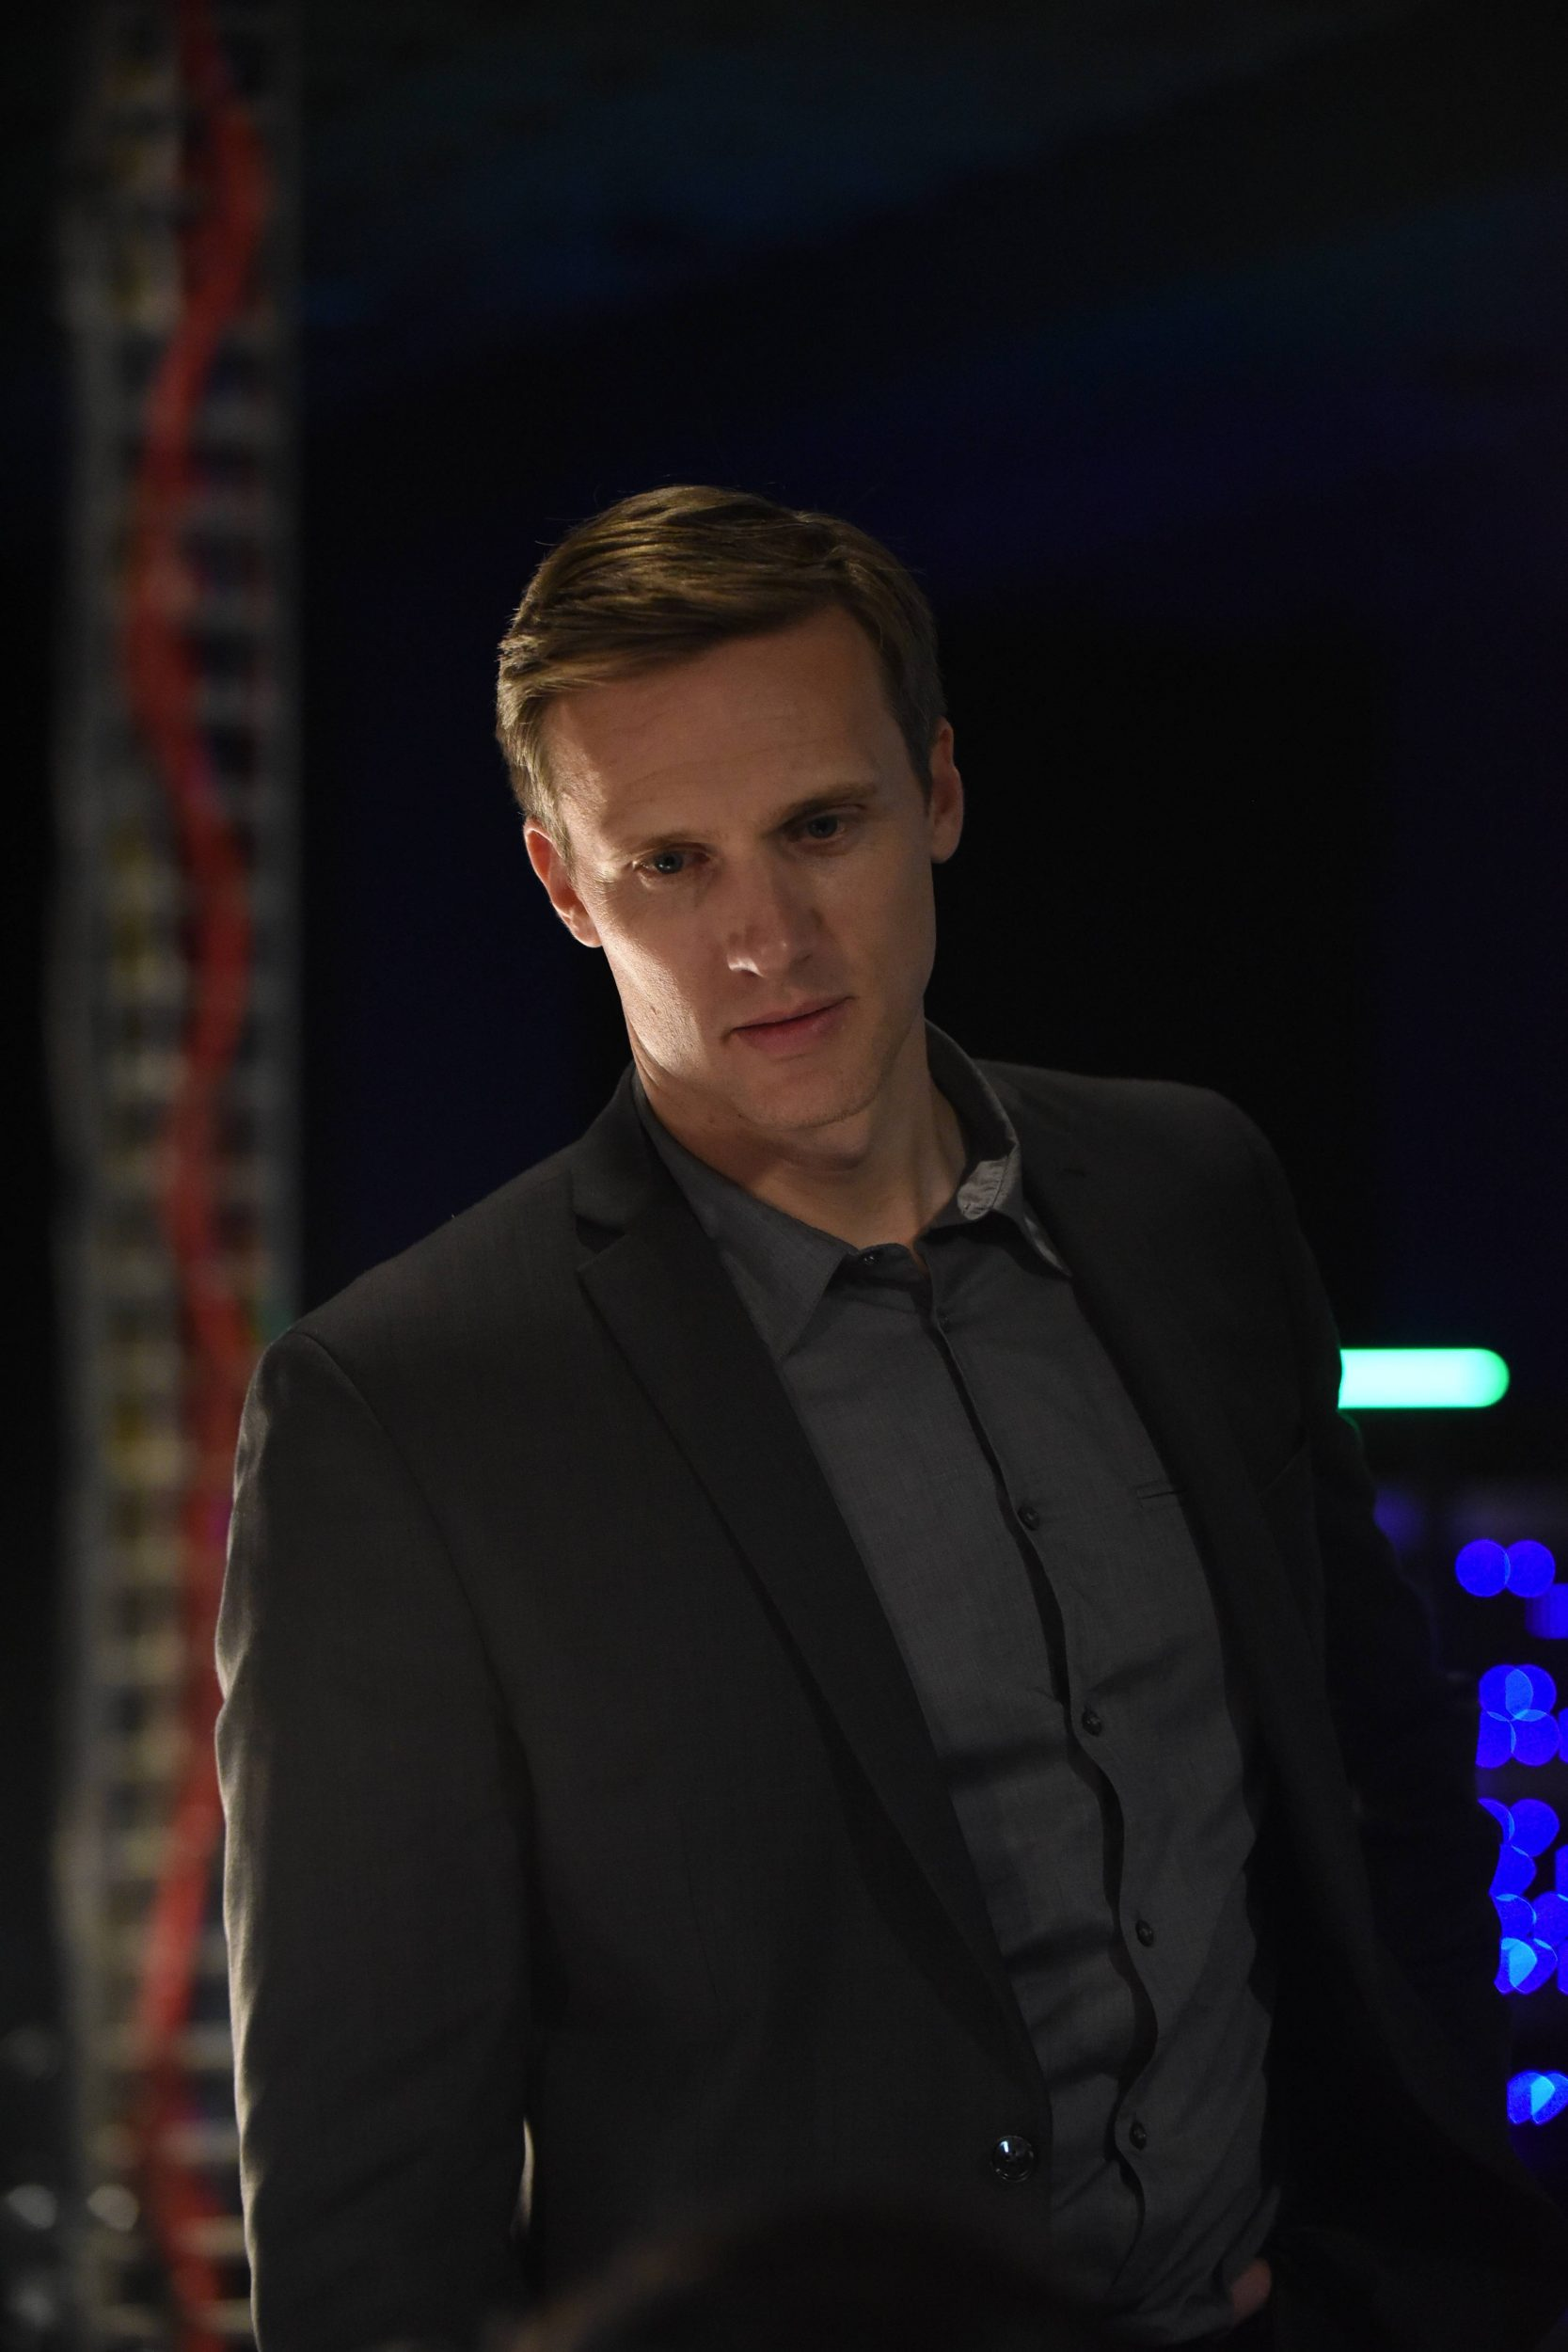 """24: LEGACY: Teddy Sears. 24: LEGACY begins its two-night premiere event following """"SUPERBOWL LI"""" on Sunday, Feb. 5, and will continue Monday, Feb. 6 on FOX. ©2016 Fox Broadcasting Co. Cr: Ray Mickshaw/FOX"""